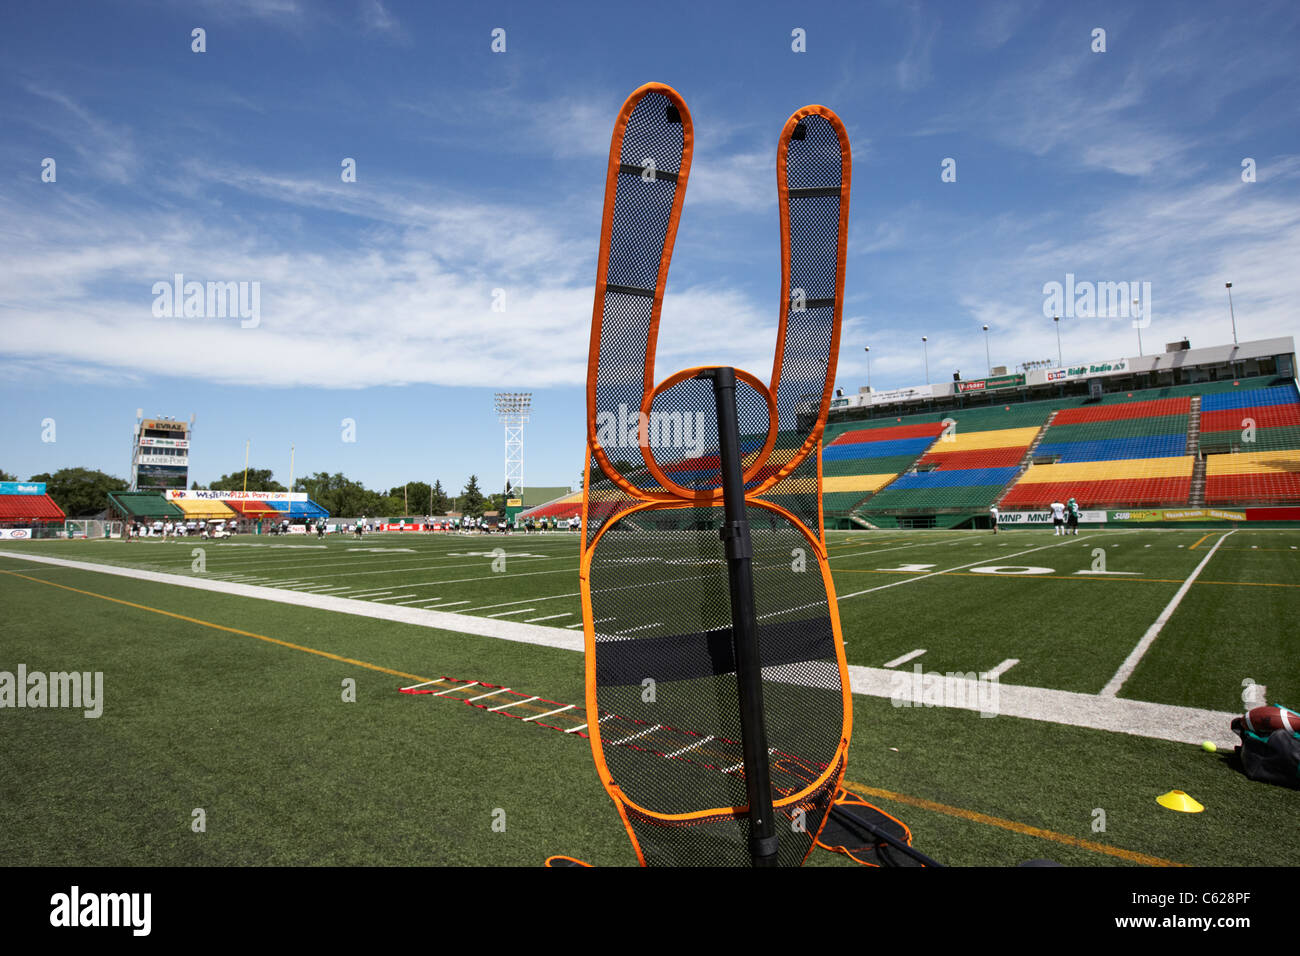 portable defender dummy on the sideline at saskatchewan roughriders pre season training mosaic stadium taylor field - Stock Image